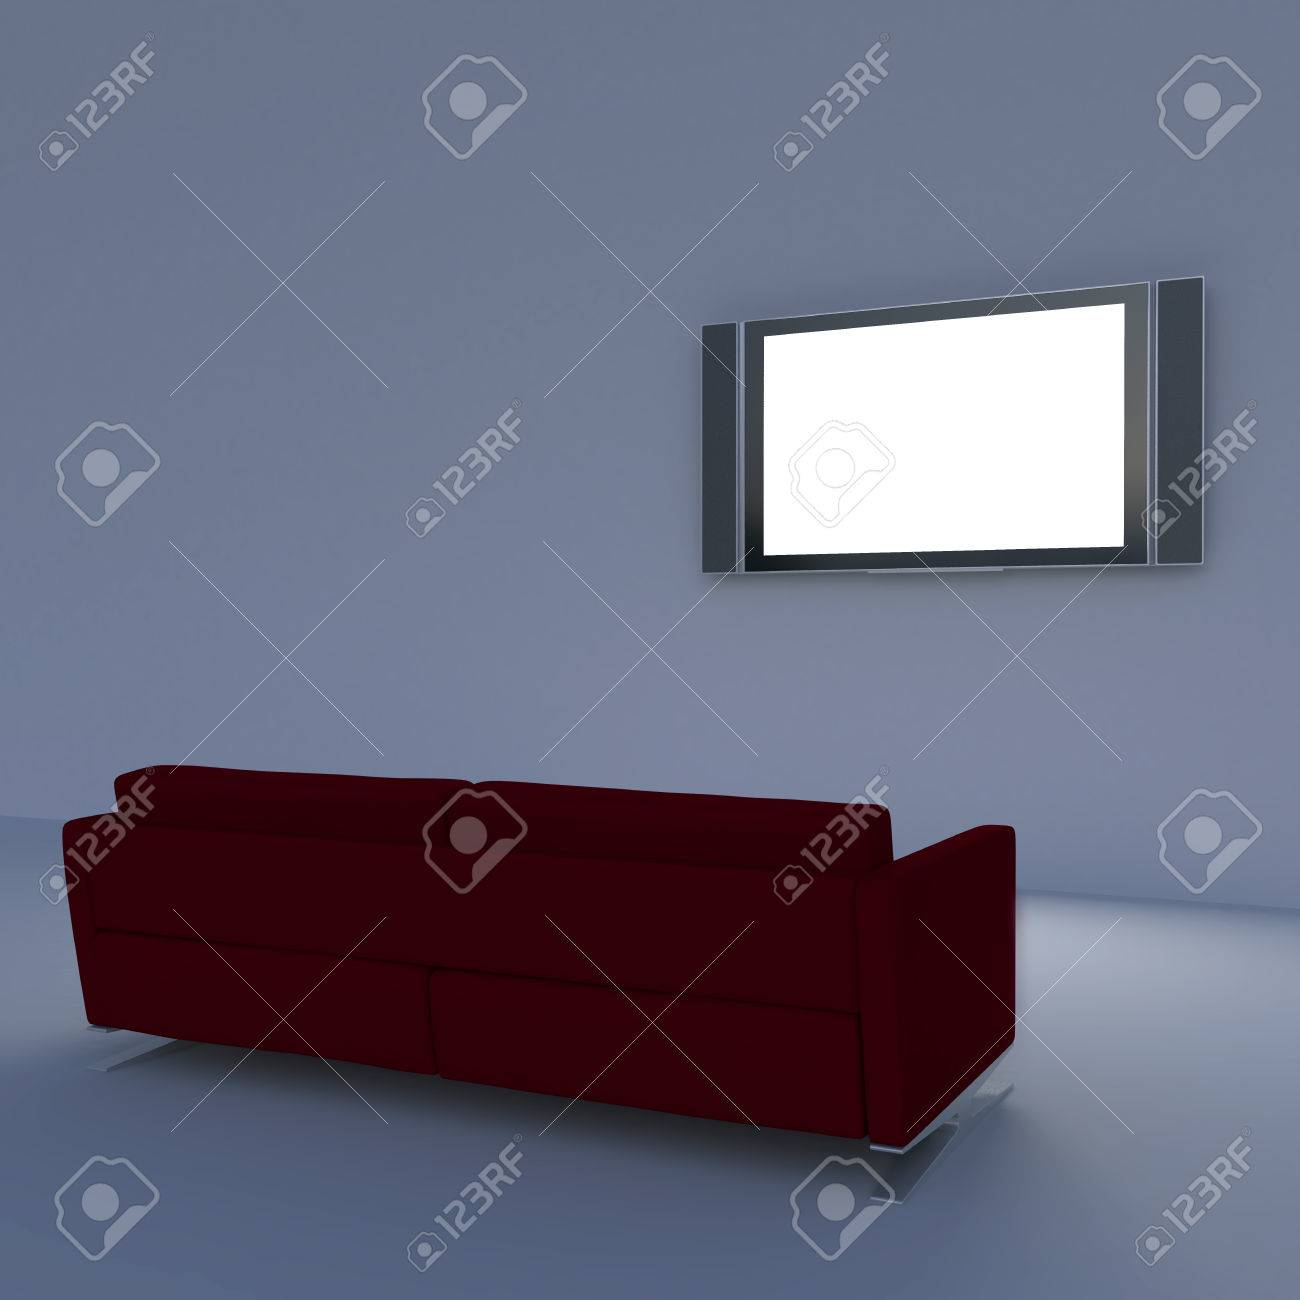 Red Sofa With A Flat Screen TV On The Wall Stock Photo   35861864